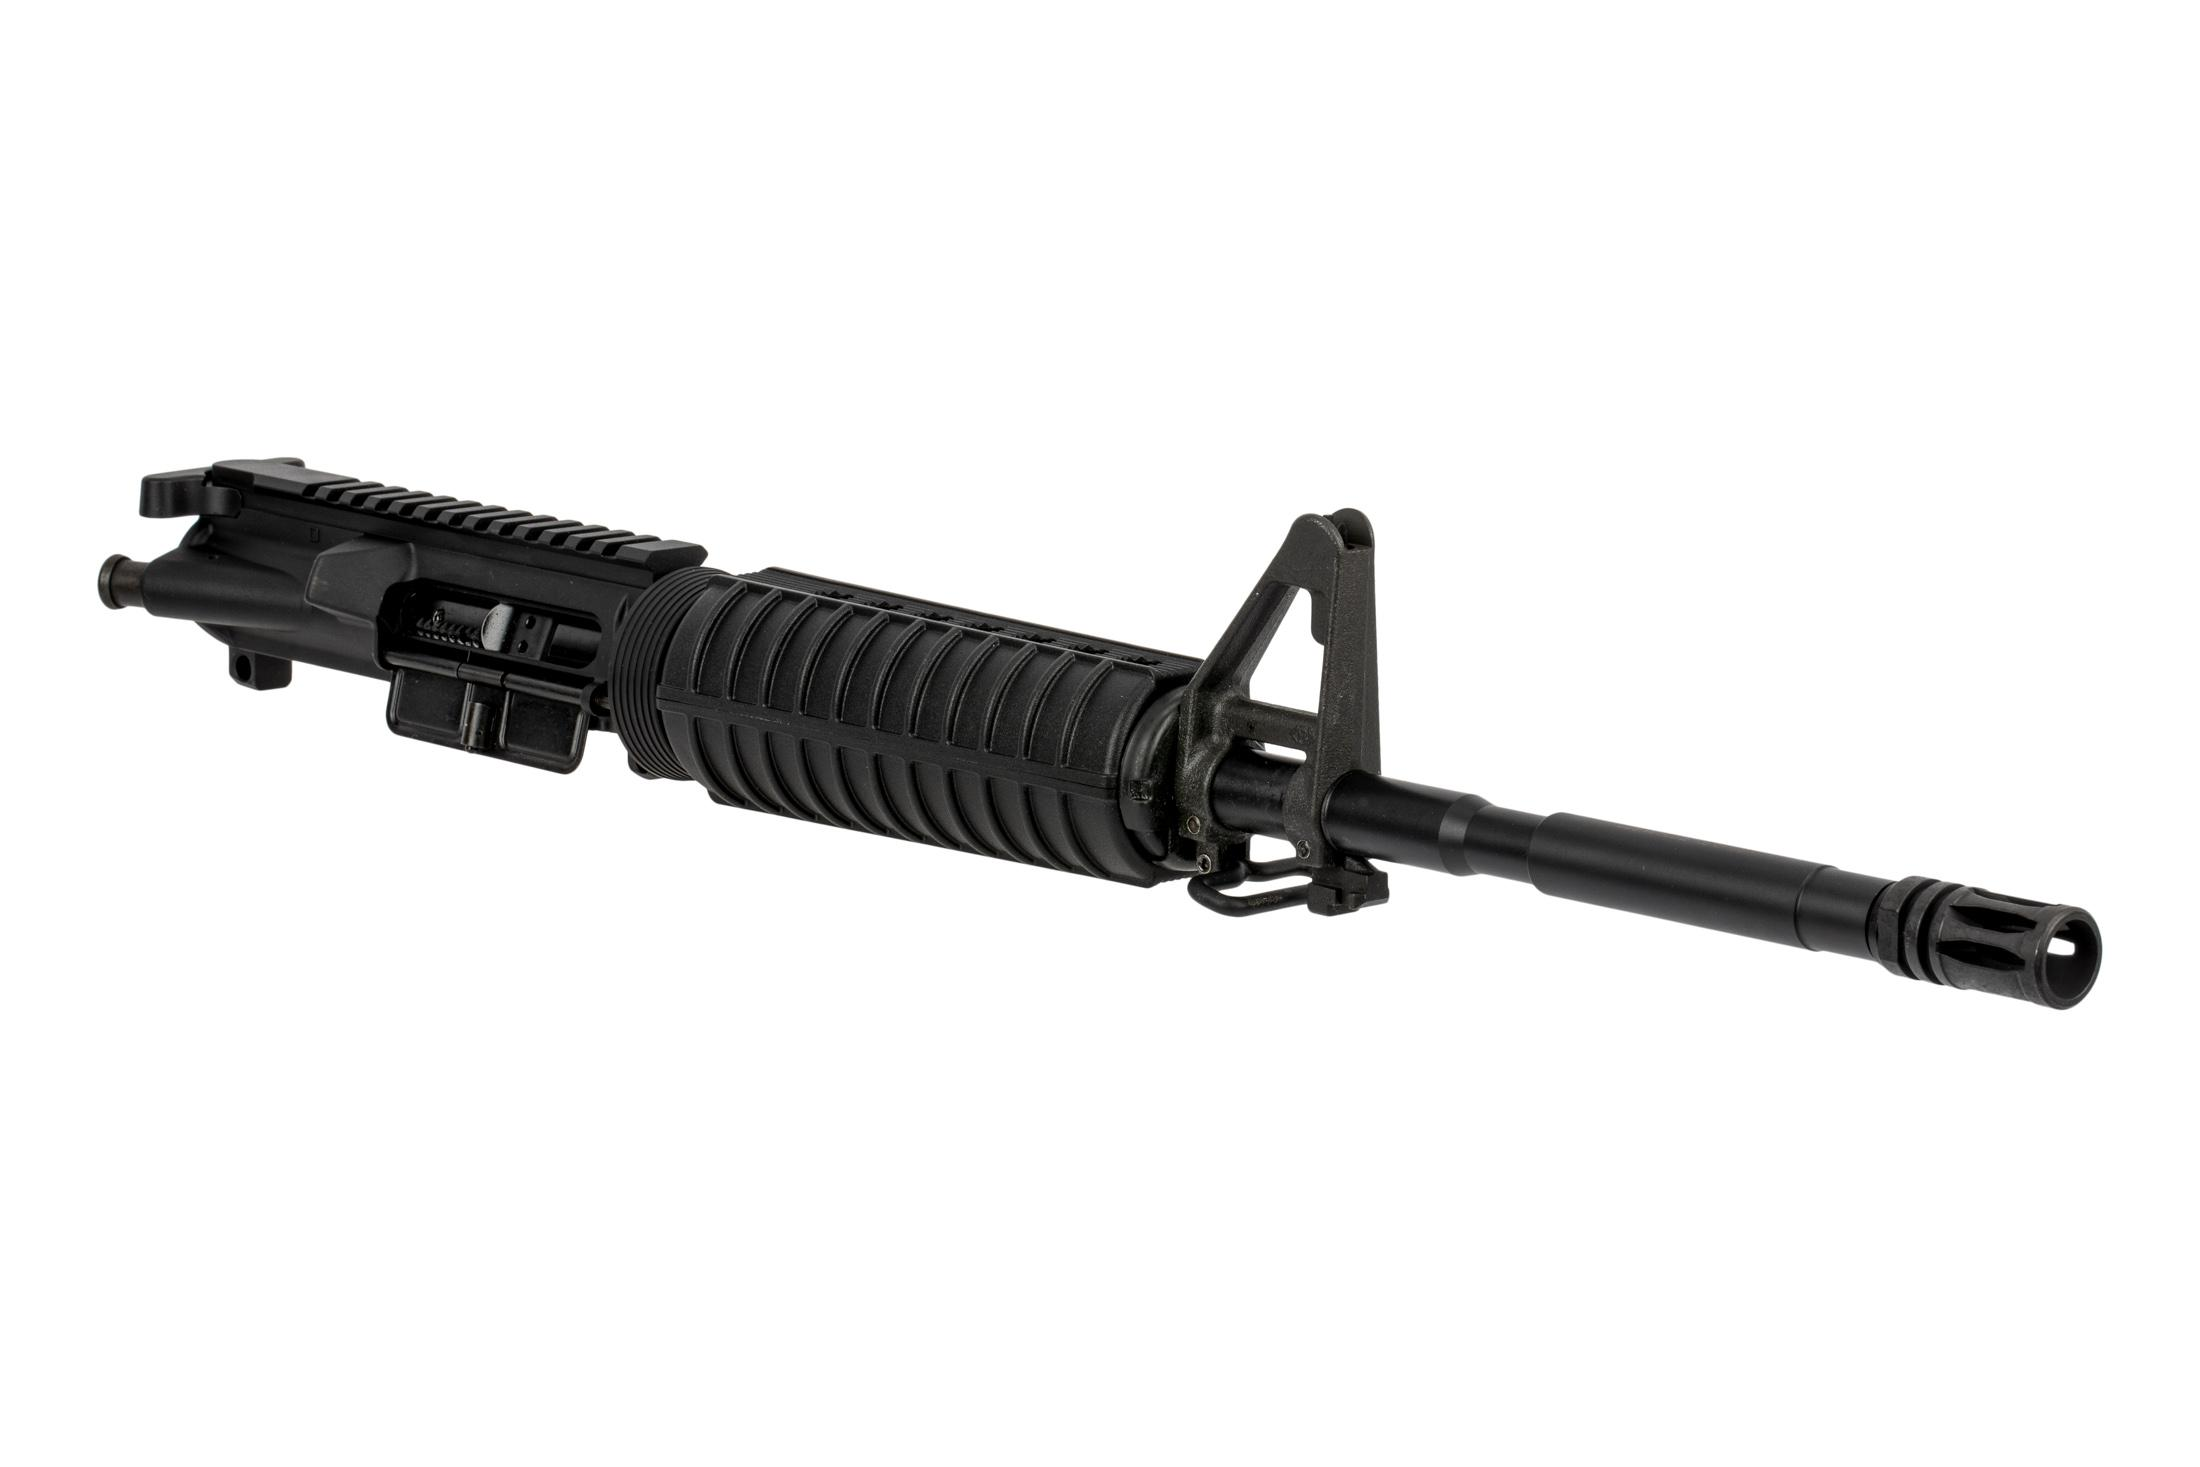 Anderson Manufacturing Complete AR-15 Upper with Front Sight Post - 16